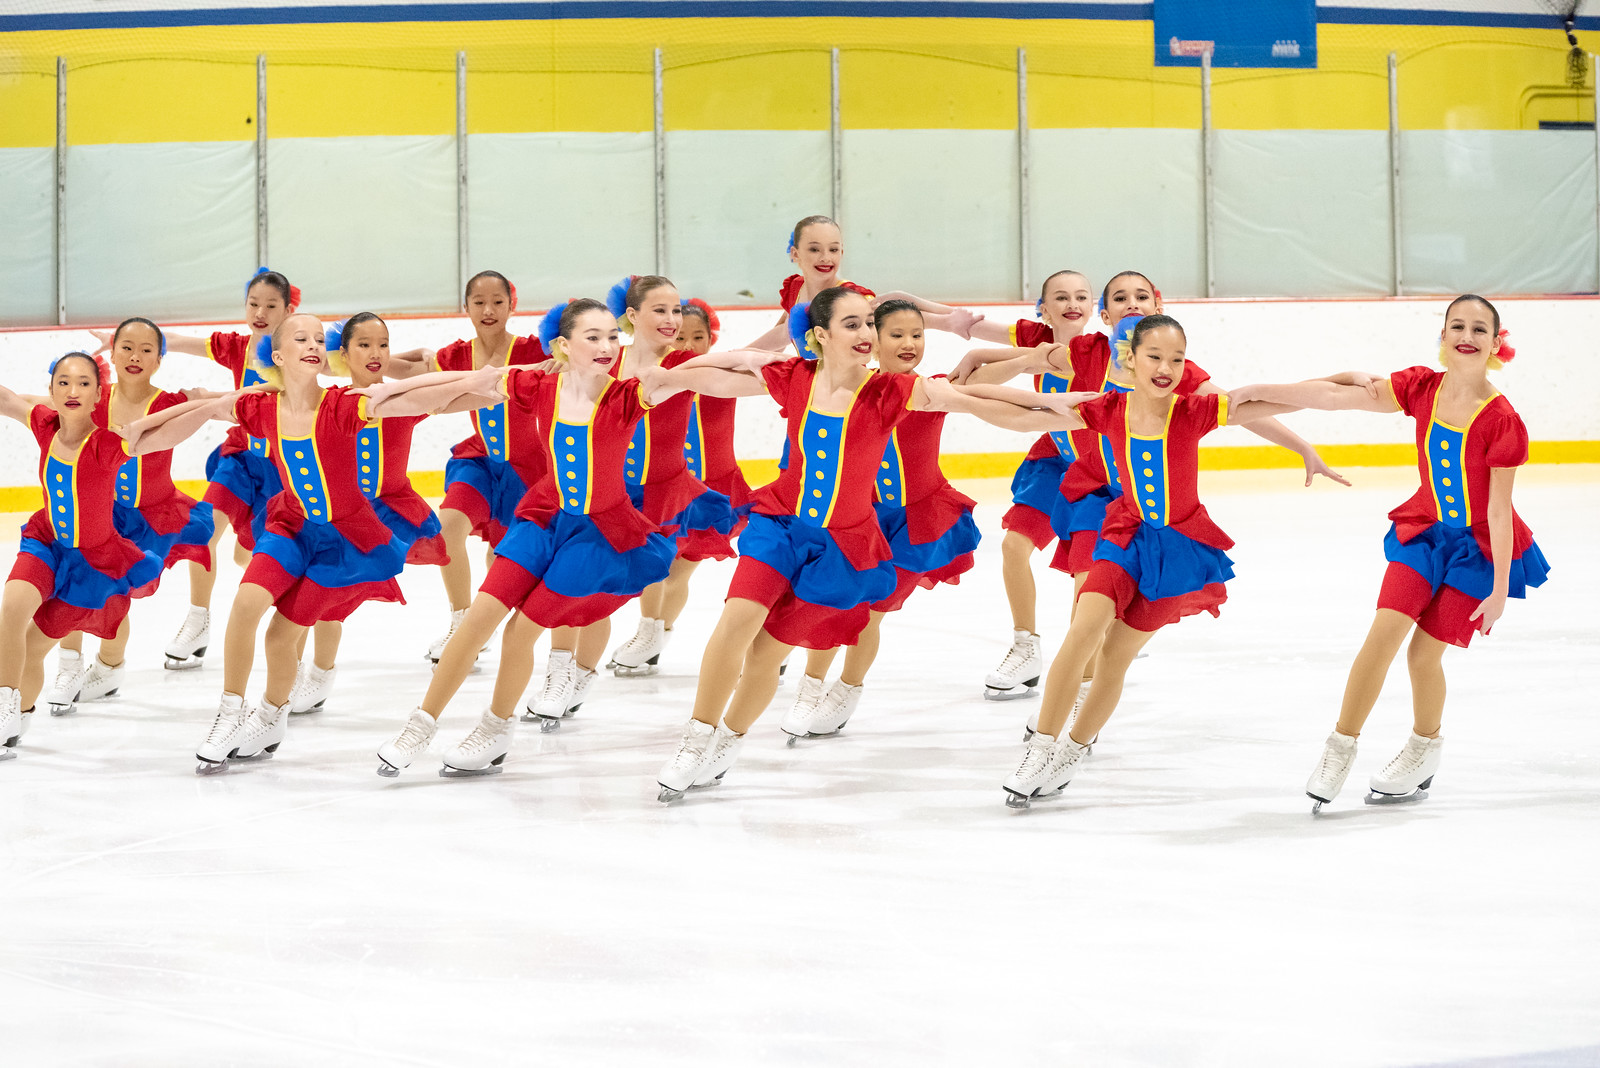 Th Skyliners 2018-19 Juvenile line won the 2018 Boston and Terry Conners Synchro Classics, and won silver at the 2019 Colonial Classic. Skyliners Juvenile has won four Nationals titles (2011, 2014, 2016, 2017) and Eastern Sectionals eight consecutive times (2011-18).